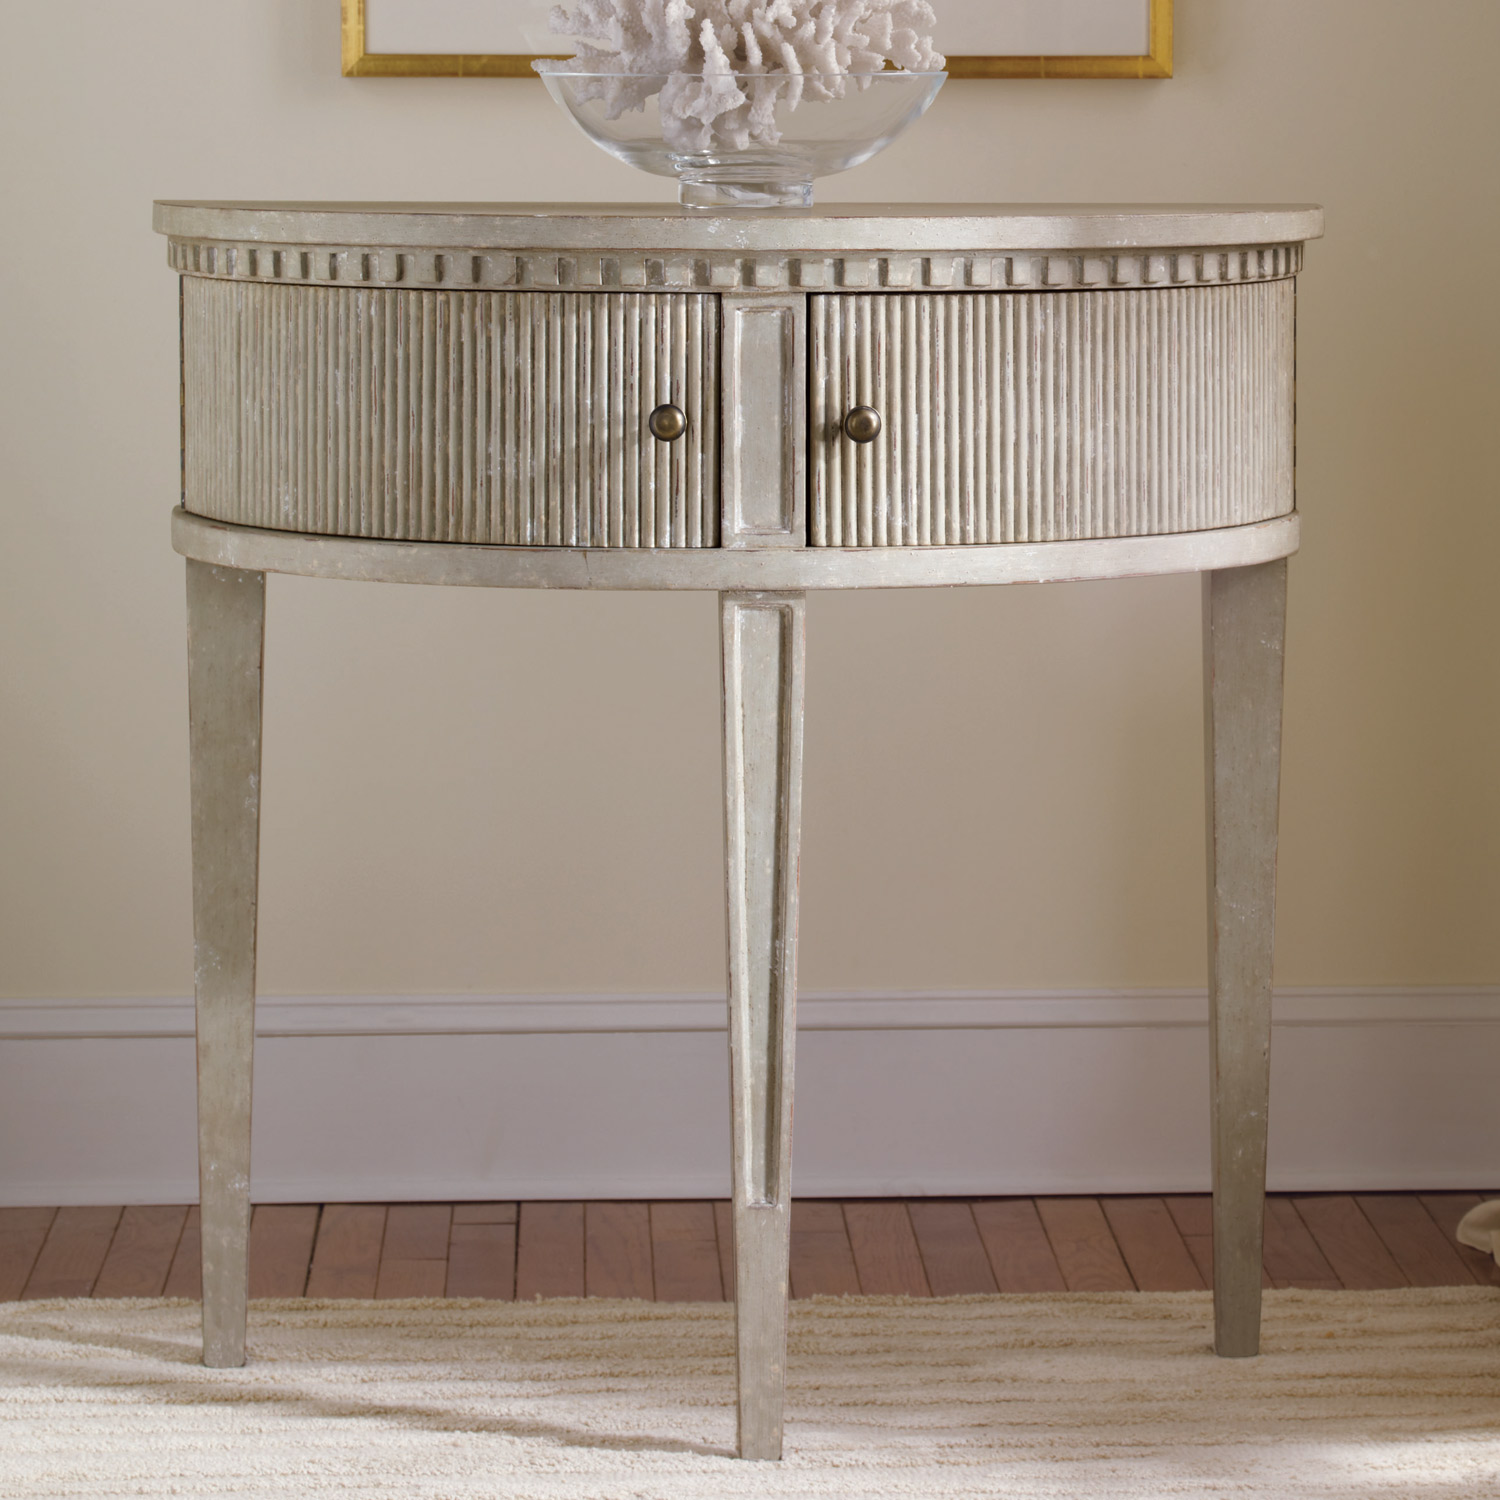 incredible half circle accent table with office star products stunning modern history home gustavian round europeanhalfcirclesidetable unique wine racks rattan drinks cooler